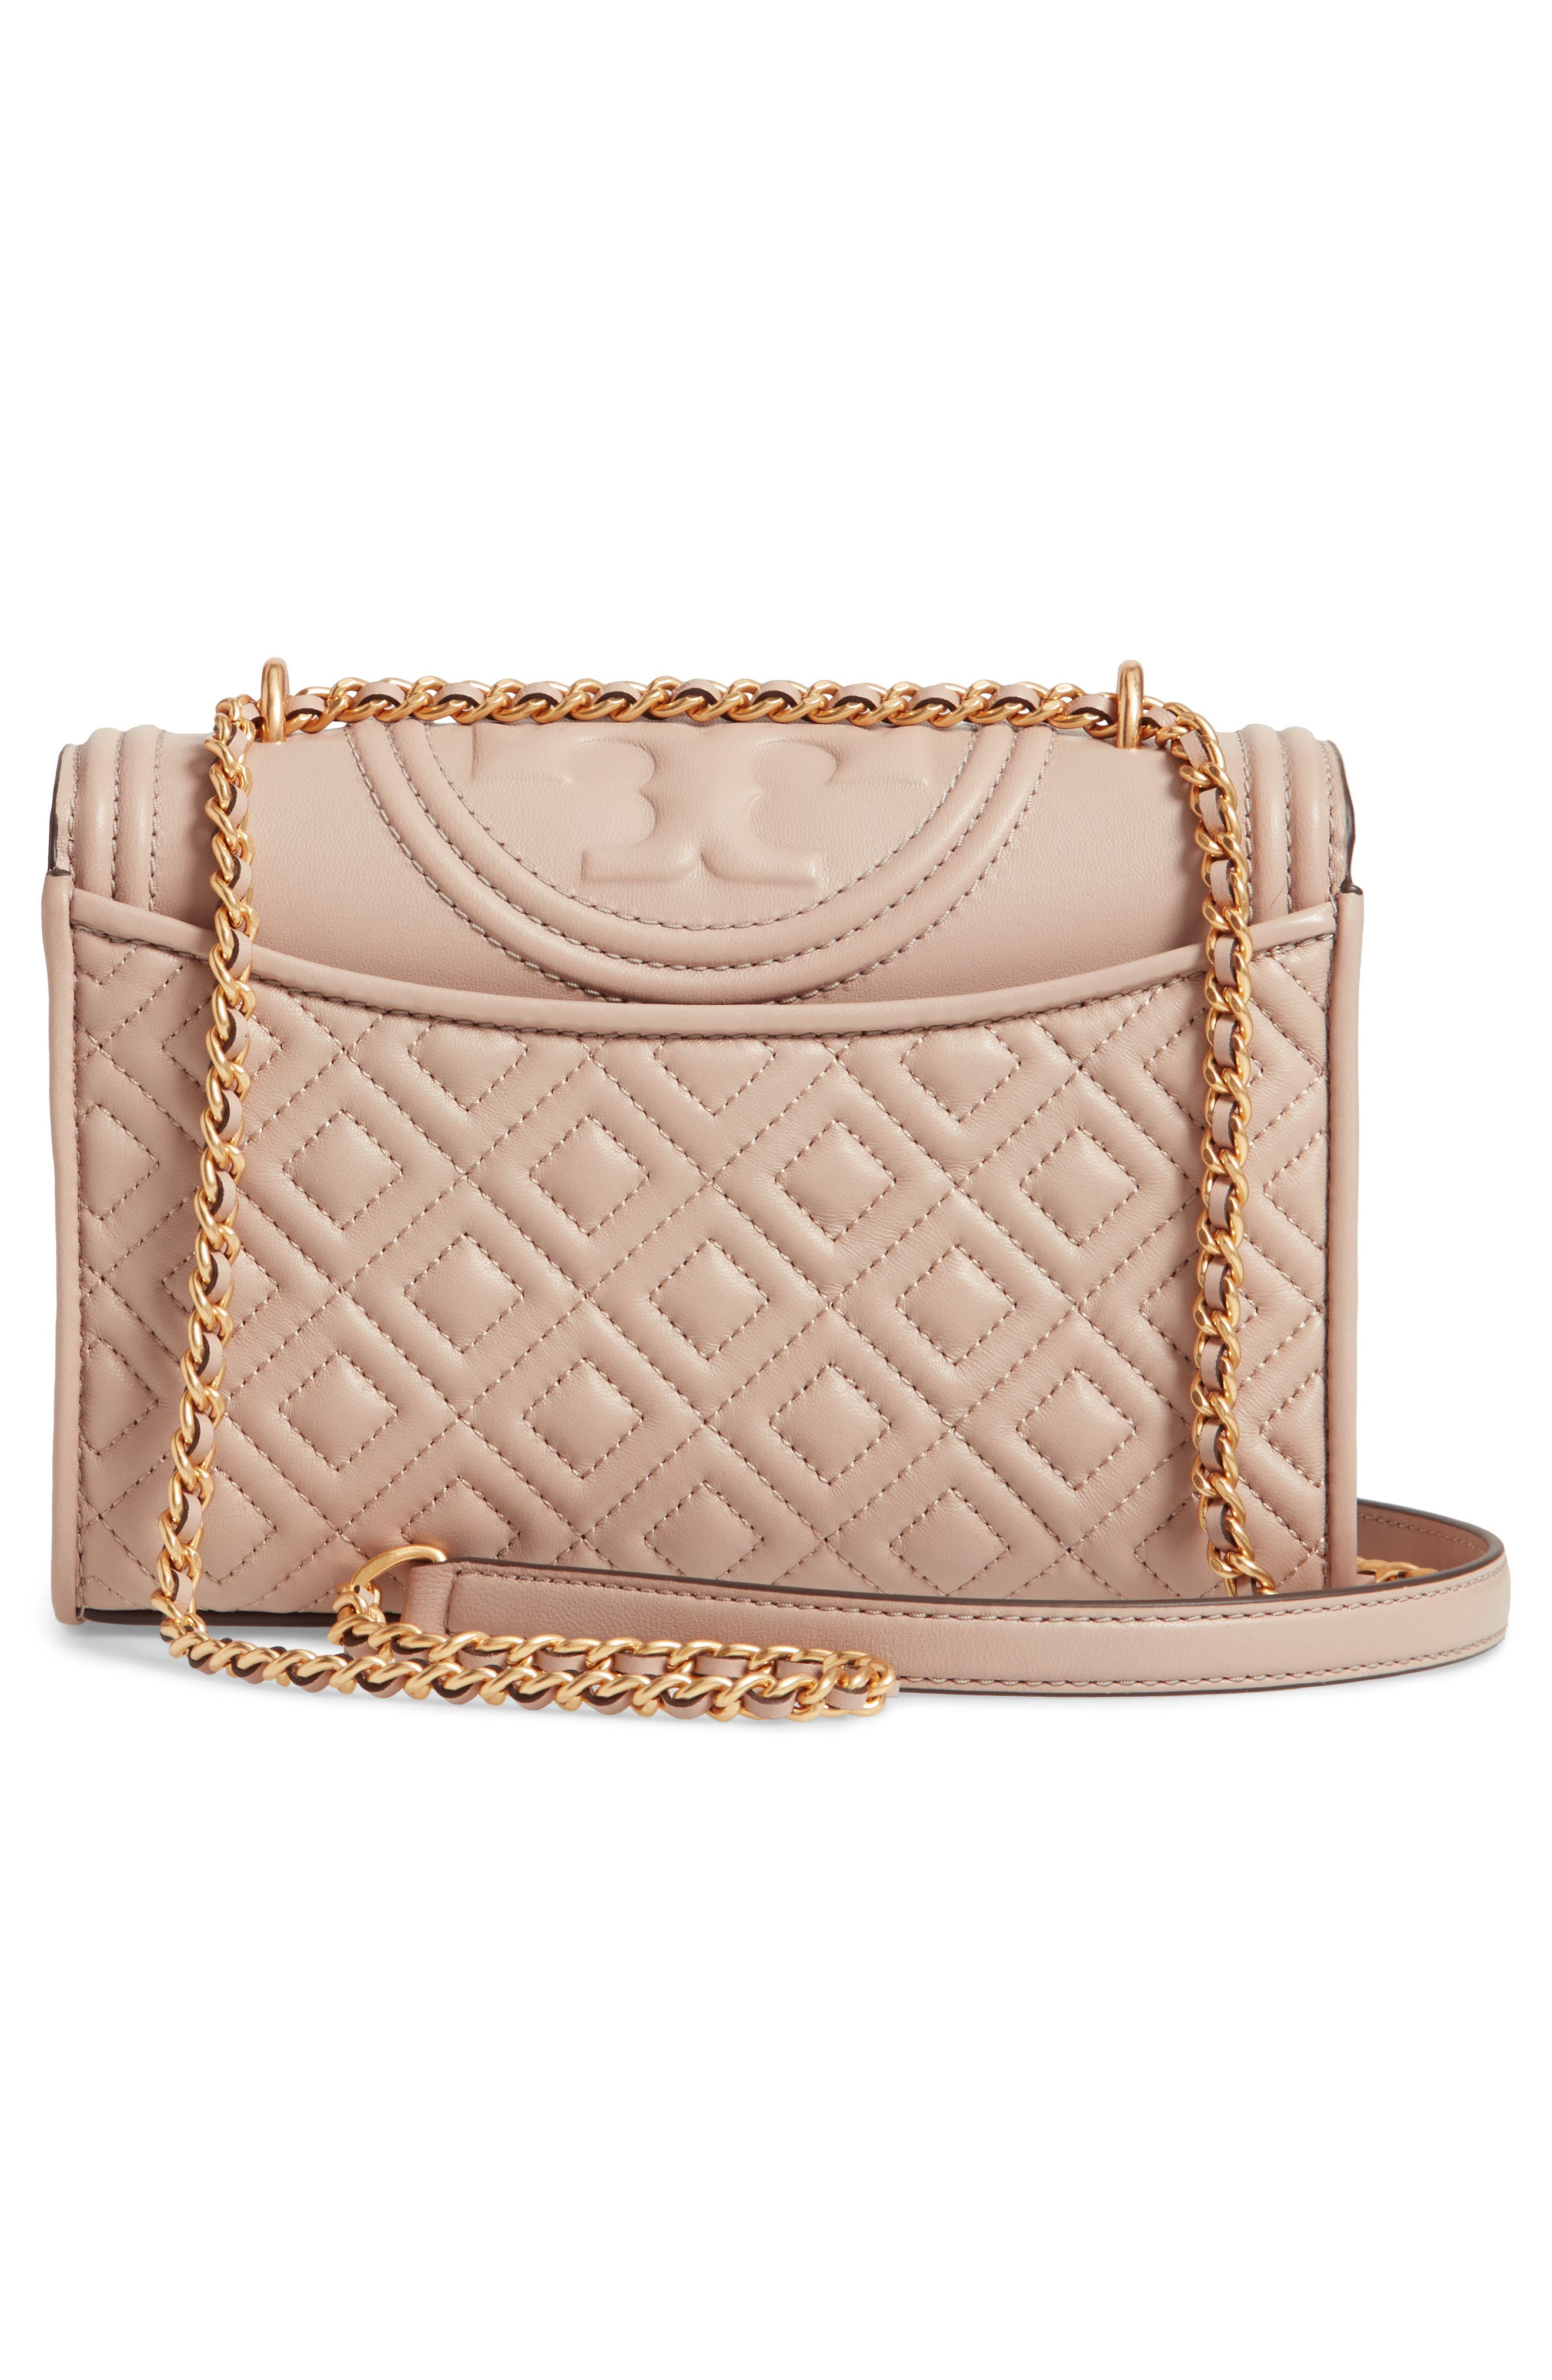 TORY BURCH, Small Fleming Leather Convertible Shoulder Bag, Alternate thumbnail 4, color, LIGHT TAUPE